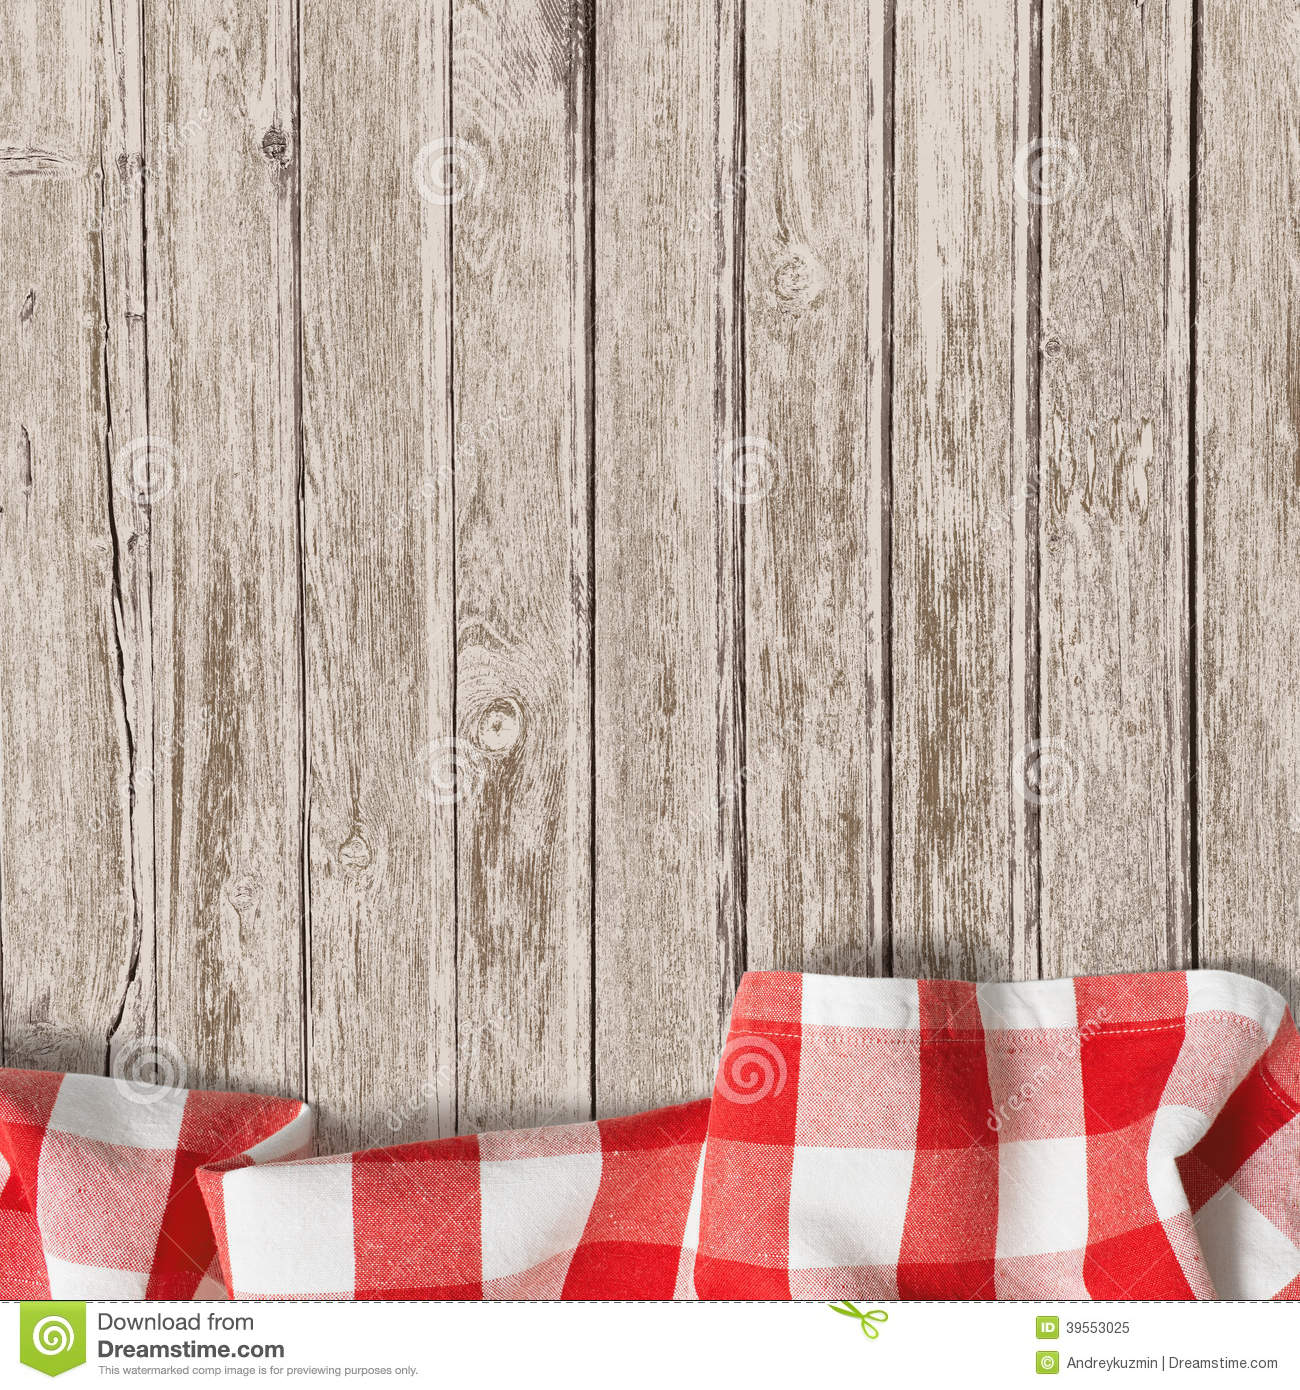 Old Wooden Table Background With Picnic Tablecloth Stock Photo - Image ...